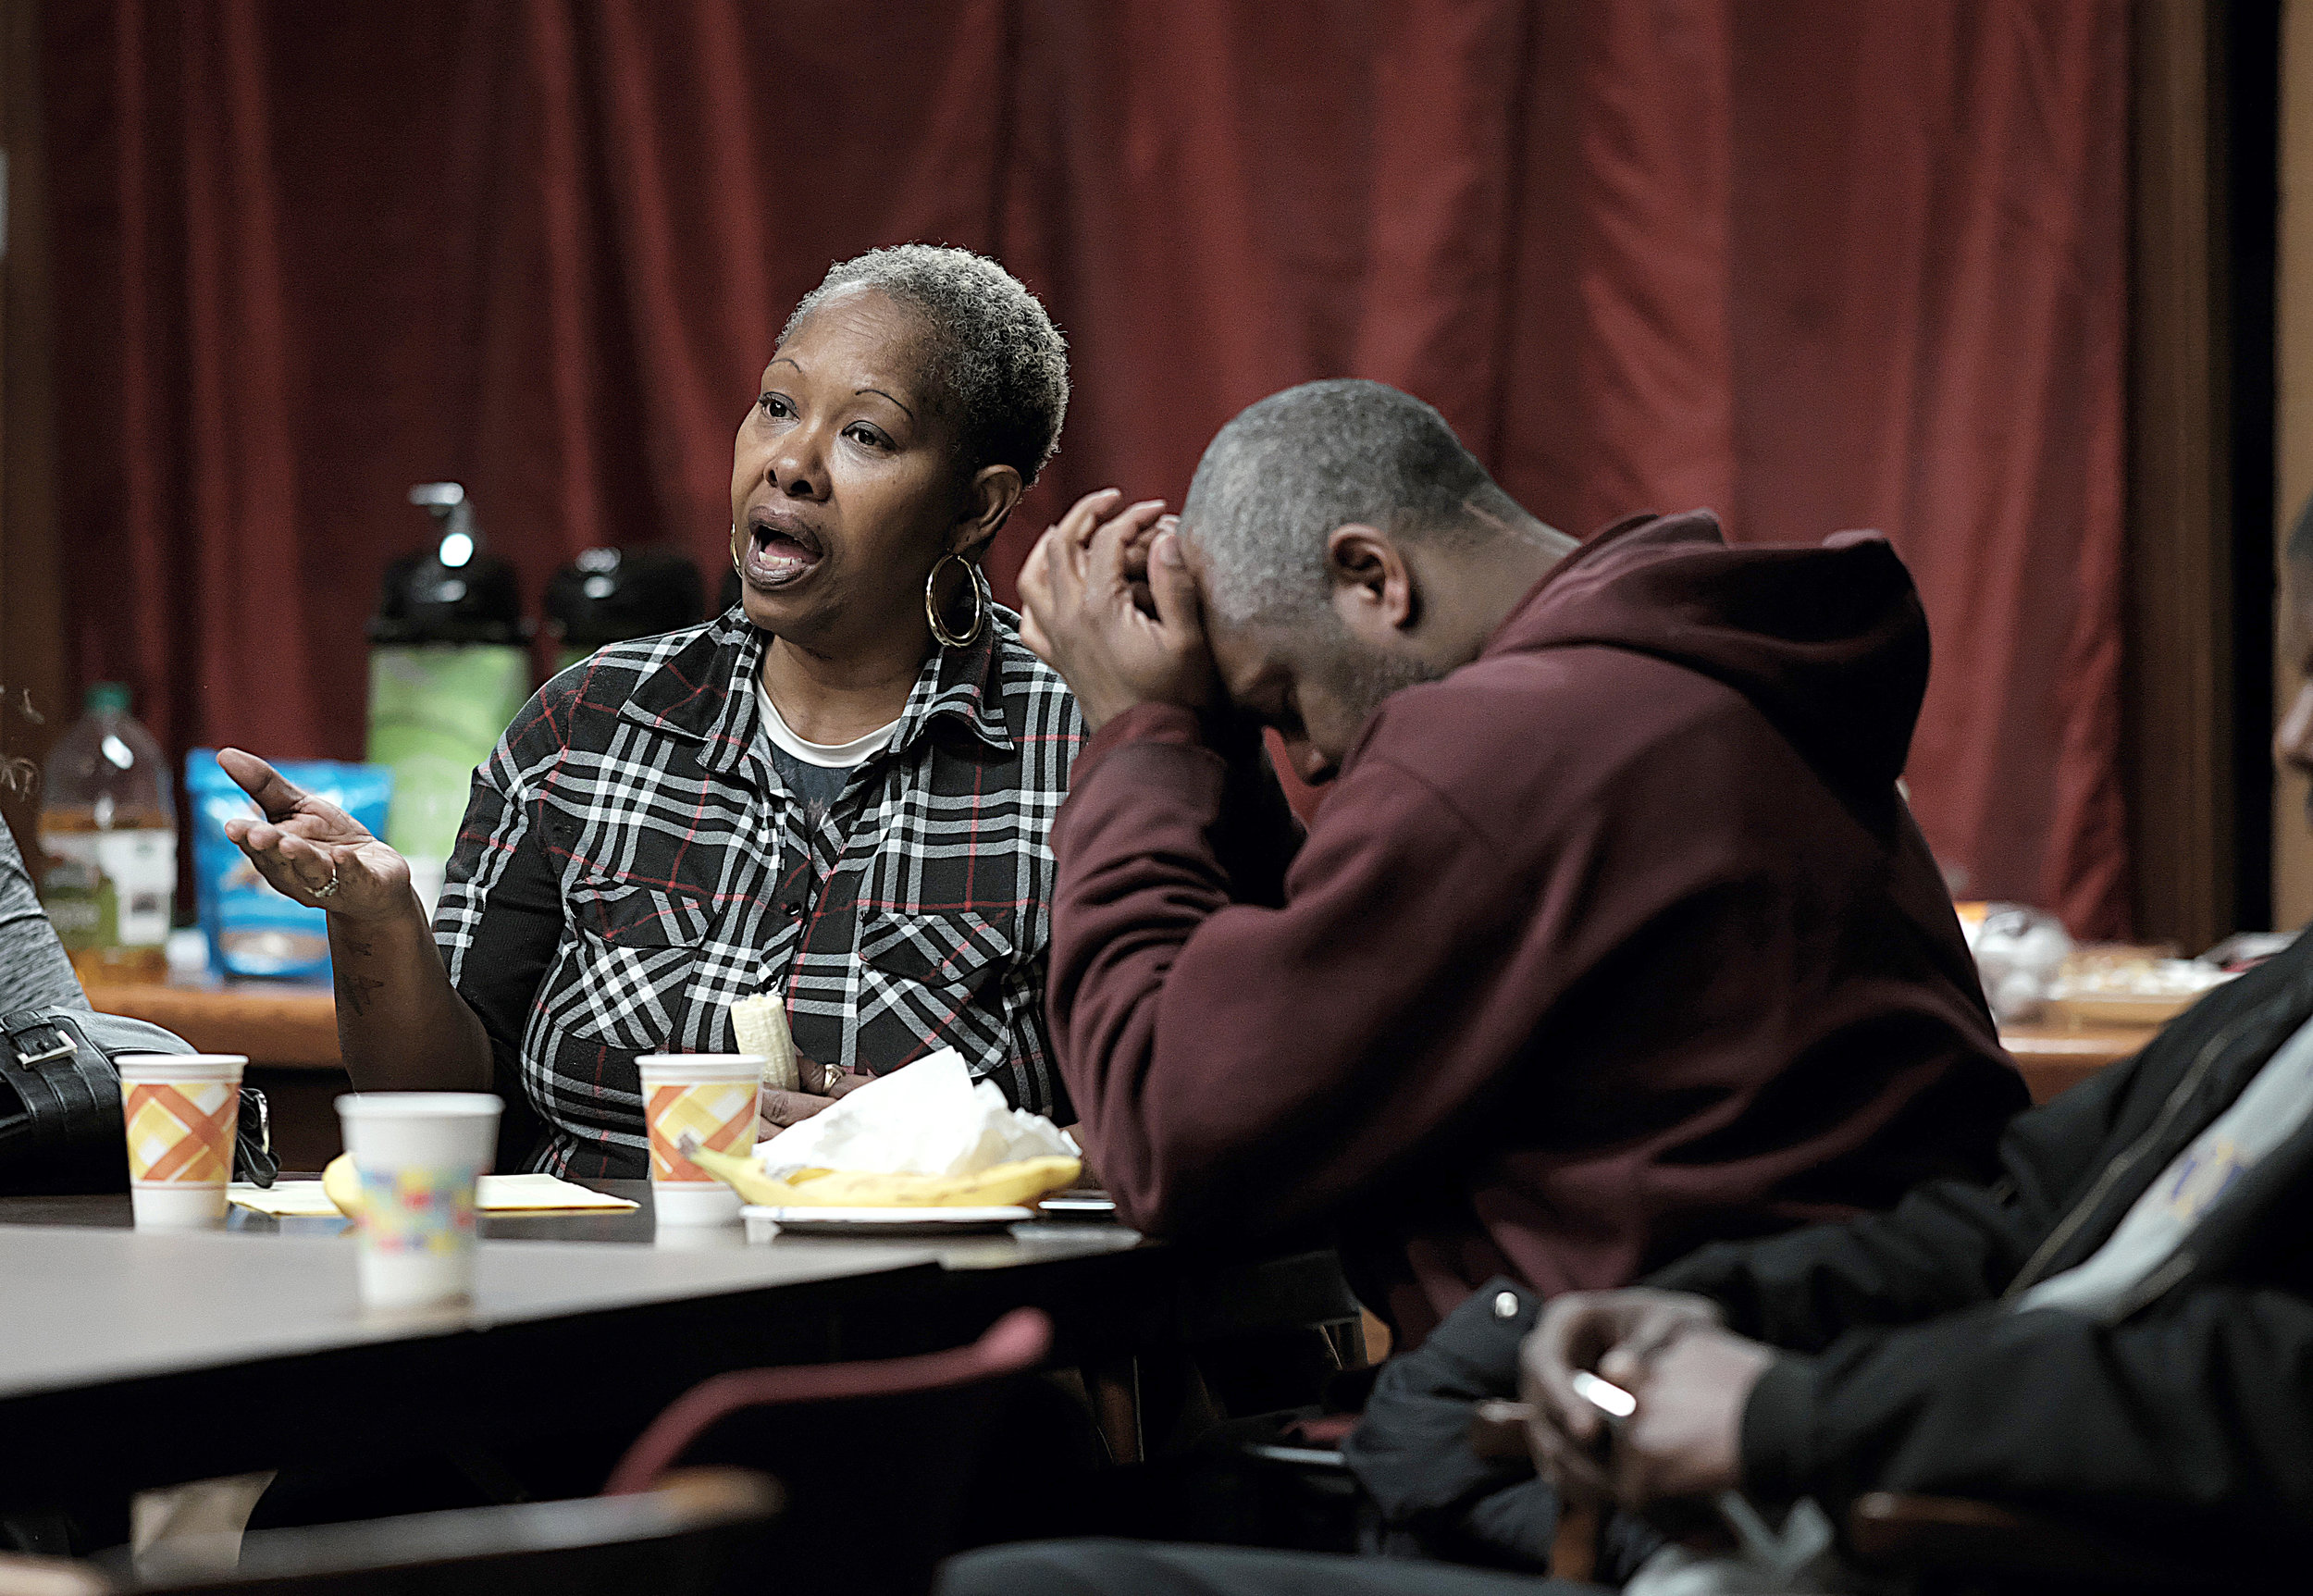 Patricia Gant and her husband, Maurice, shared their experiences living in a Khan property and fear of an uncertain housing situation during a resource meeting for Khan tenants at St. Olaf Church in January.  Photo by David Pierini